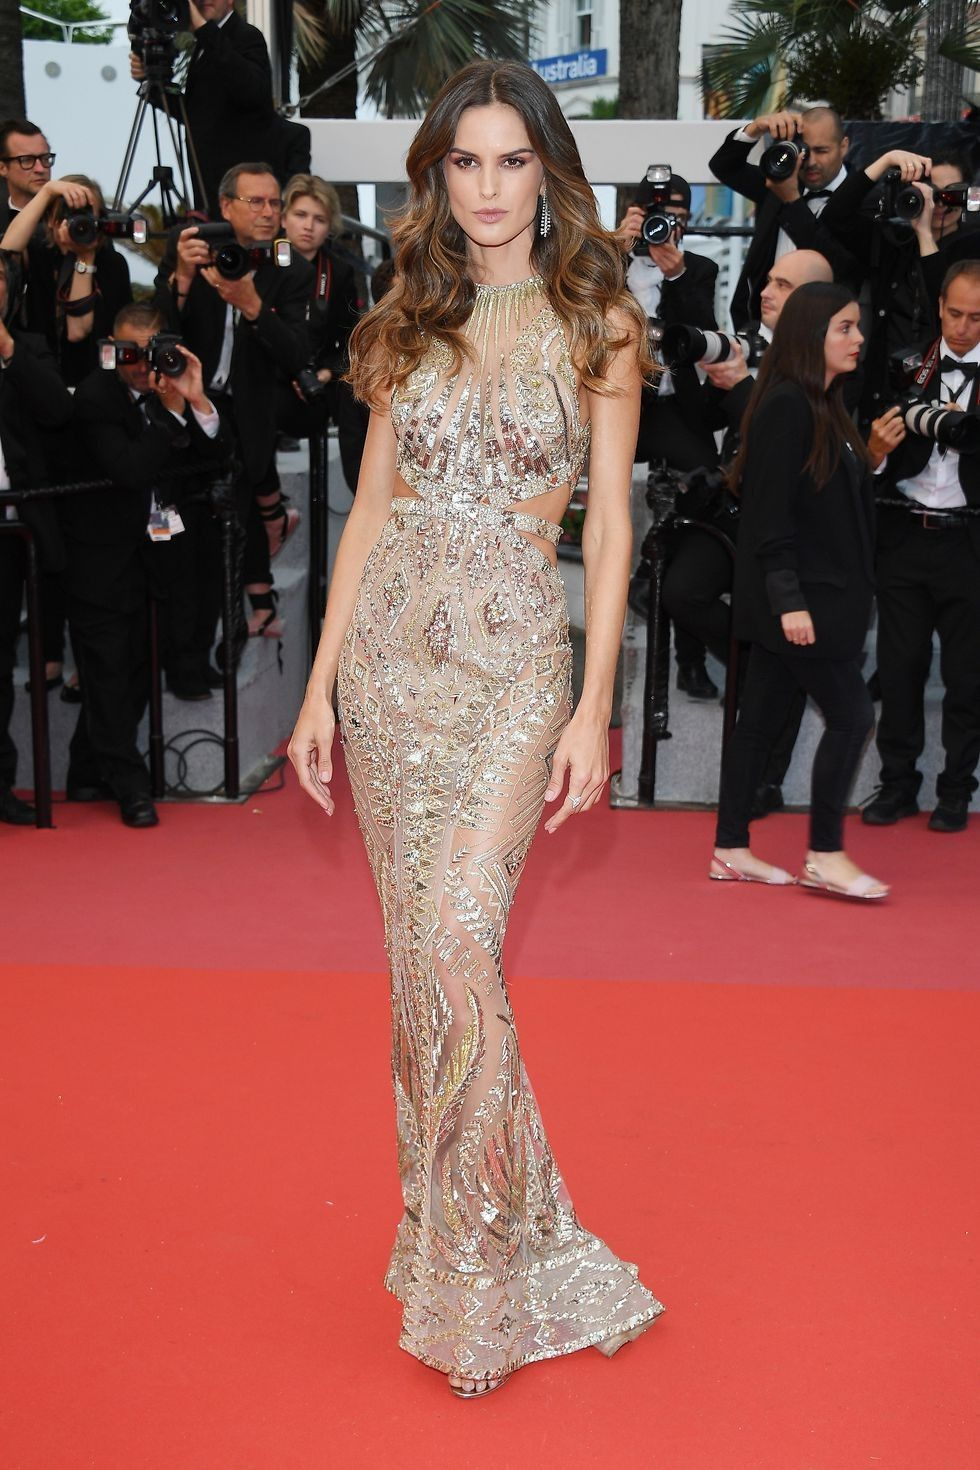 Roter Teppich Cannes Izabel Goulart In Zuhair Murad 2018 Cannes Film Festival